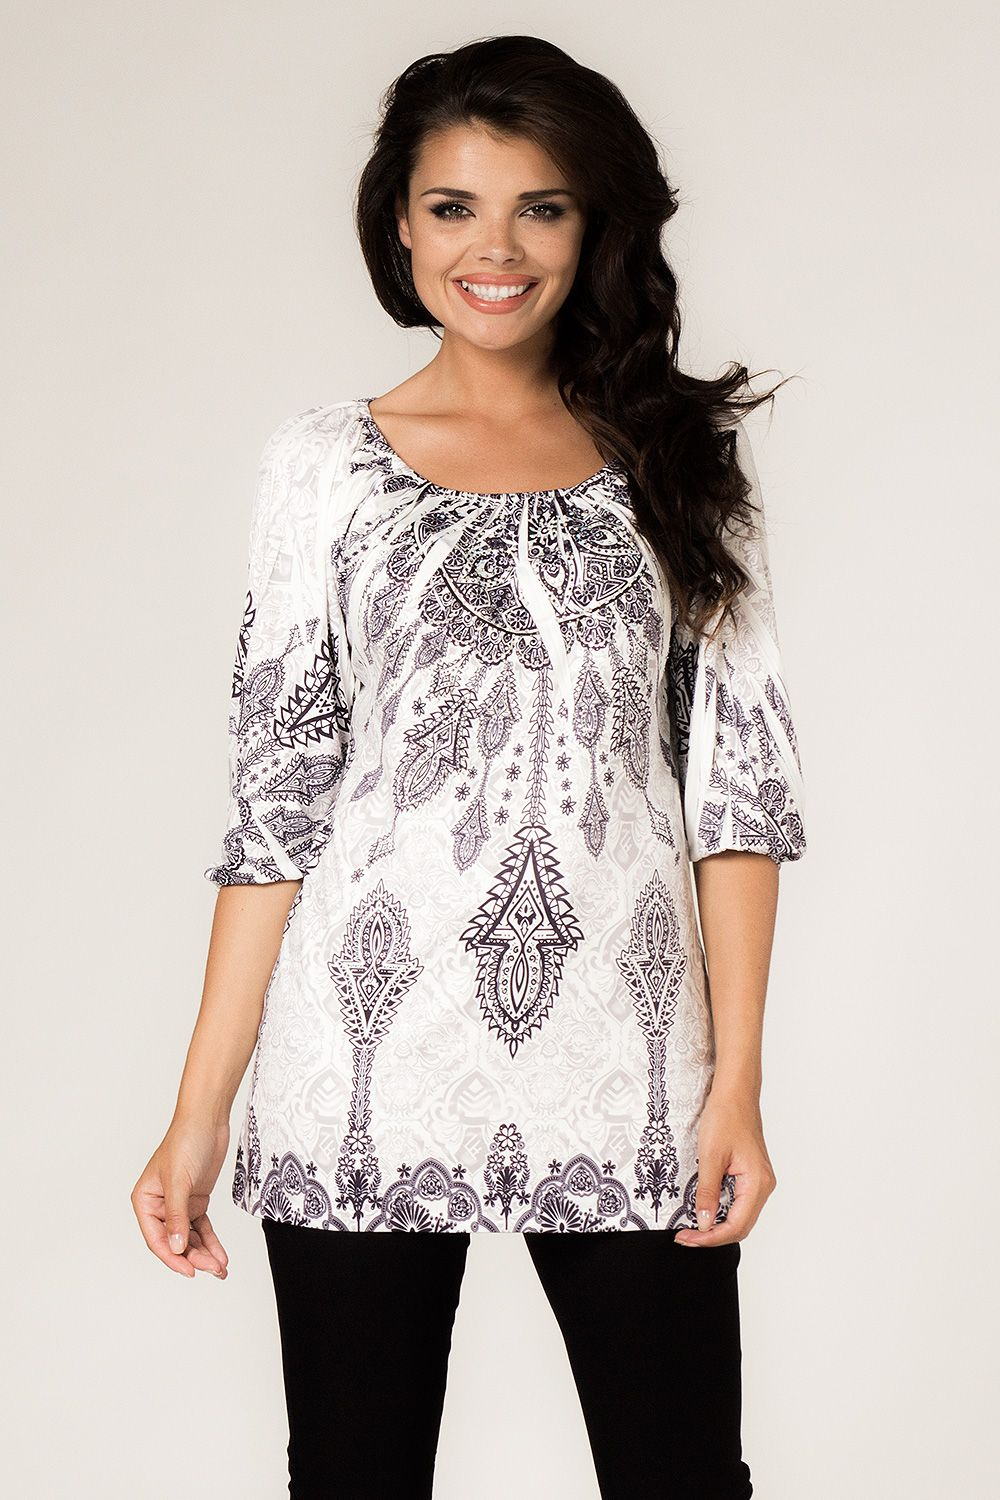 Awesome Tunic model 31549 Depare Check more at http://www.brandsforless.gr/shop/women/tunic-model-31549-depare/